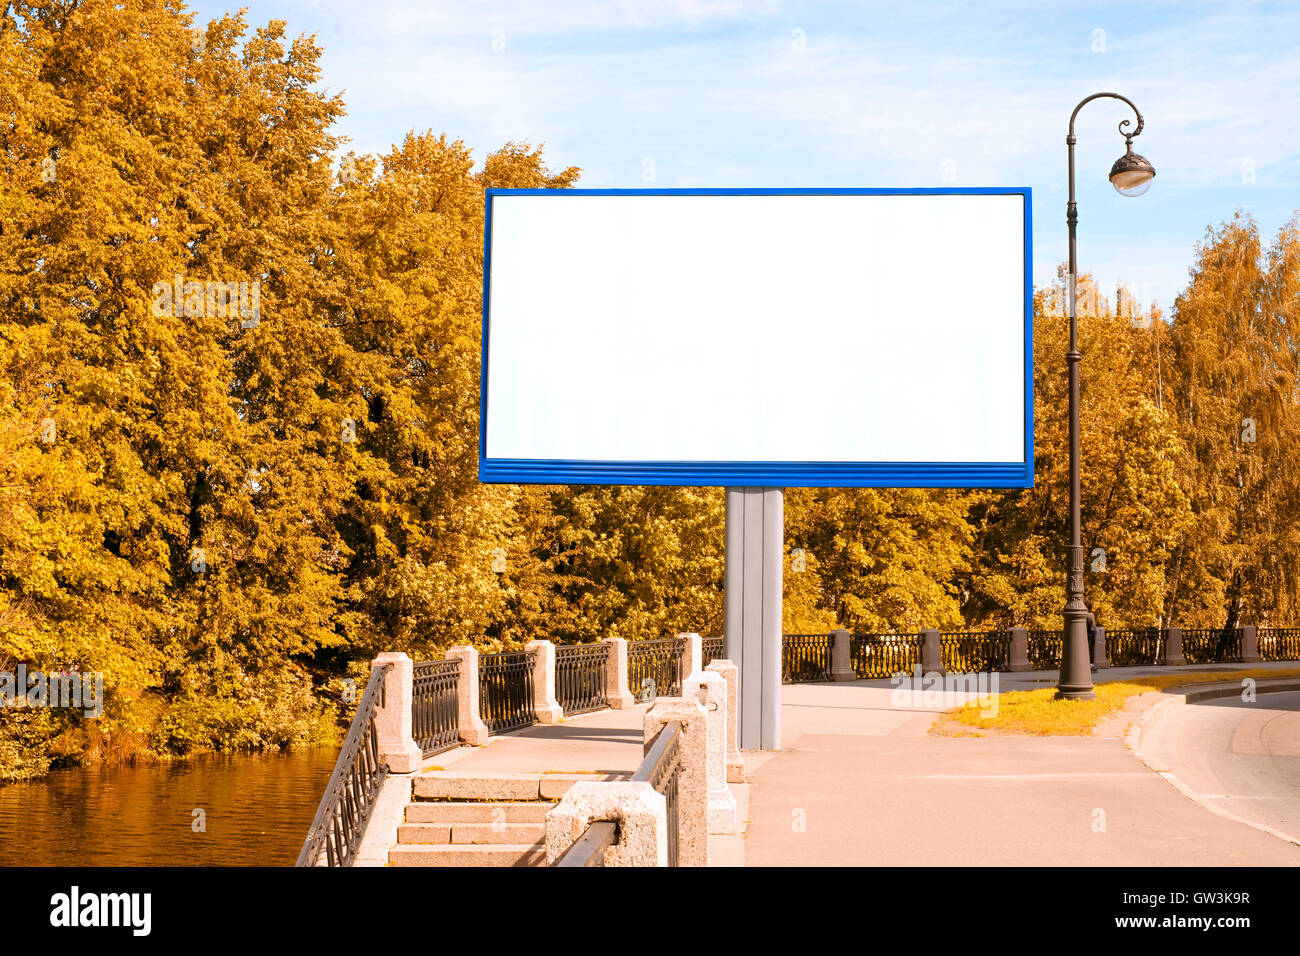 Empty billboard with copy space in autumn city against foliage and blue sky - Stock Image